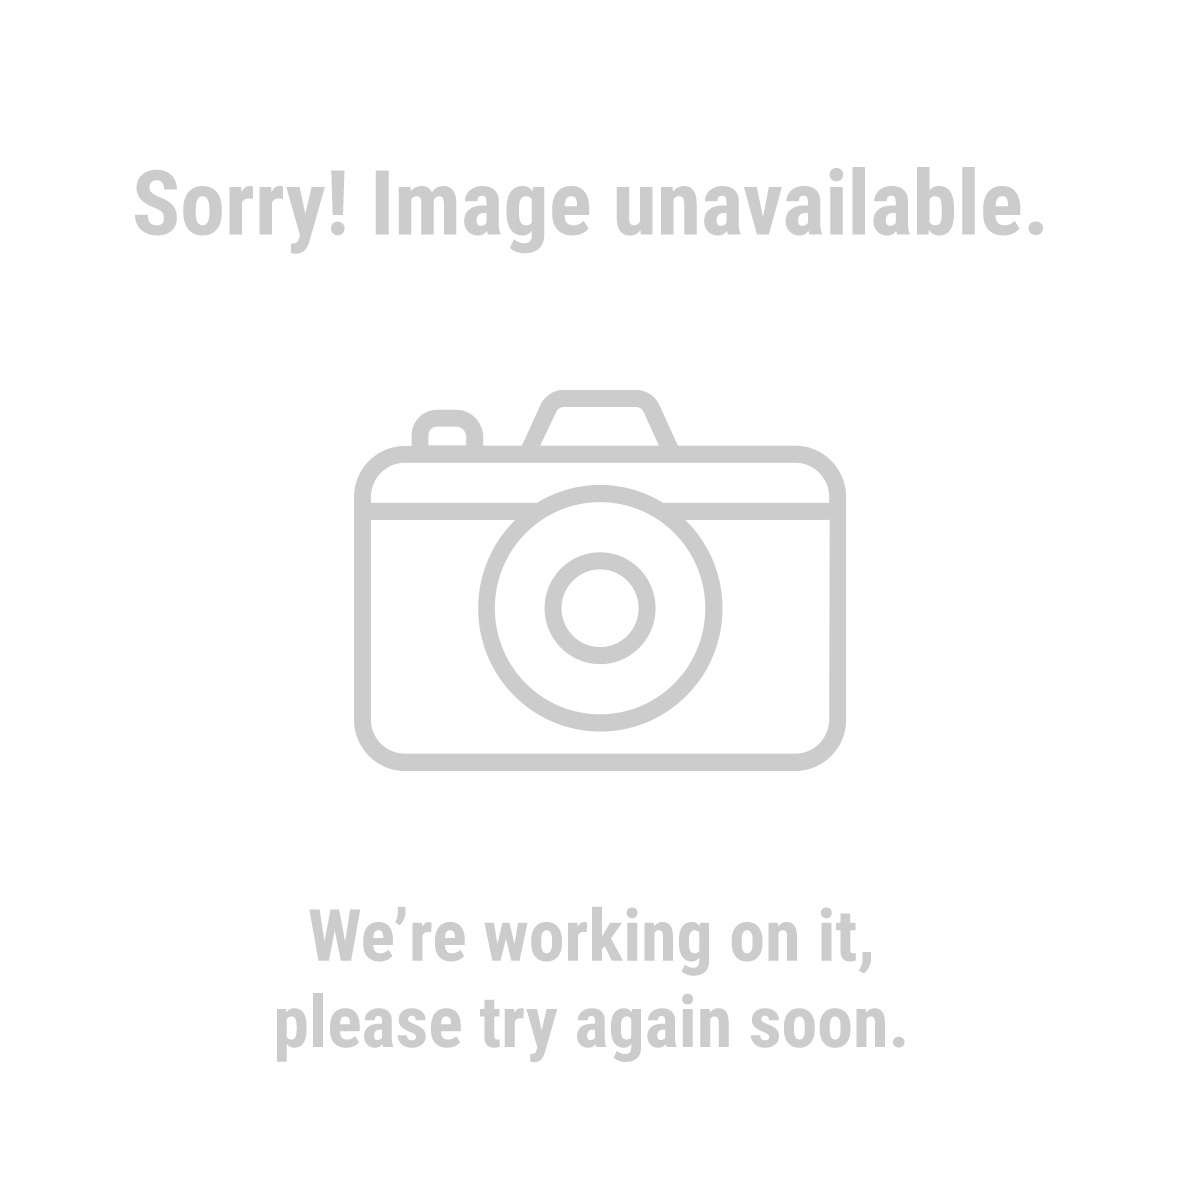 Pacific Hydrostar 62509 1-1/2 HP Whole House Water Booster Pump 976 GPH